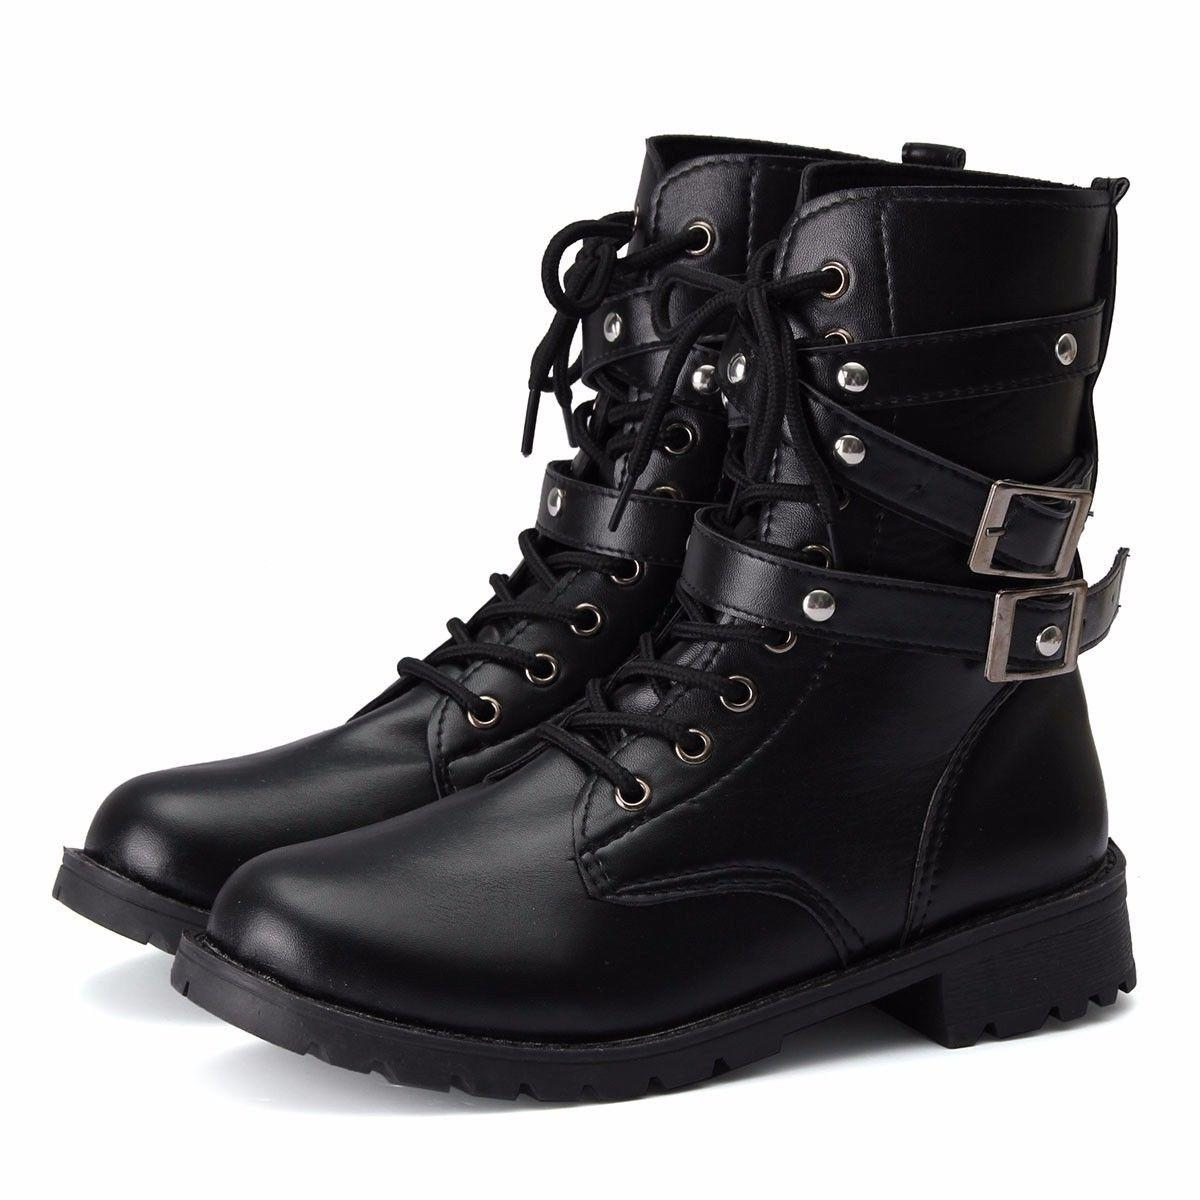 Punk Women's Motorcycle Biker Military Buckle Ankle Shoes